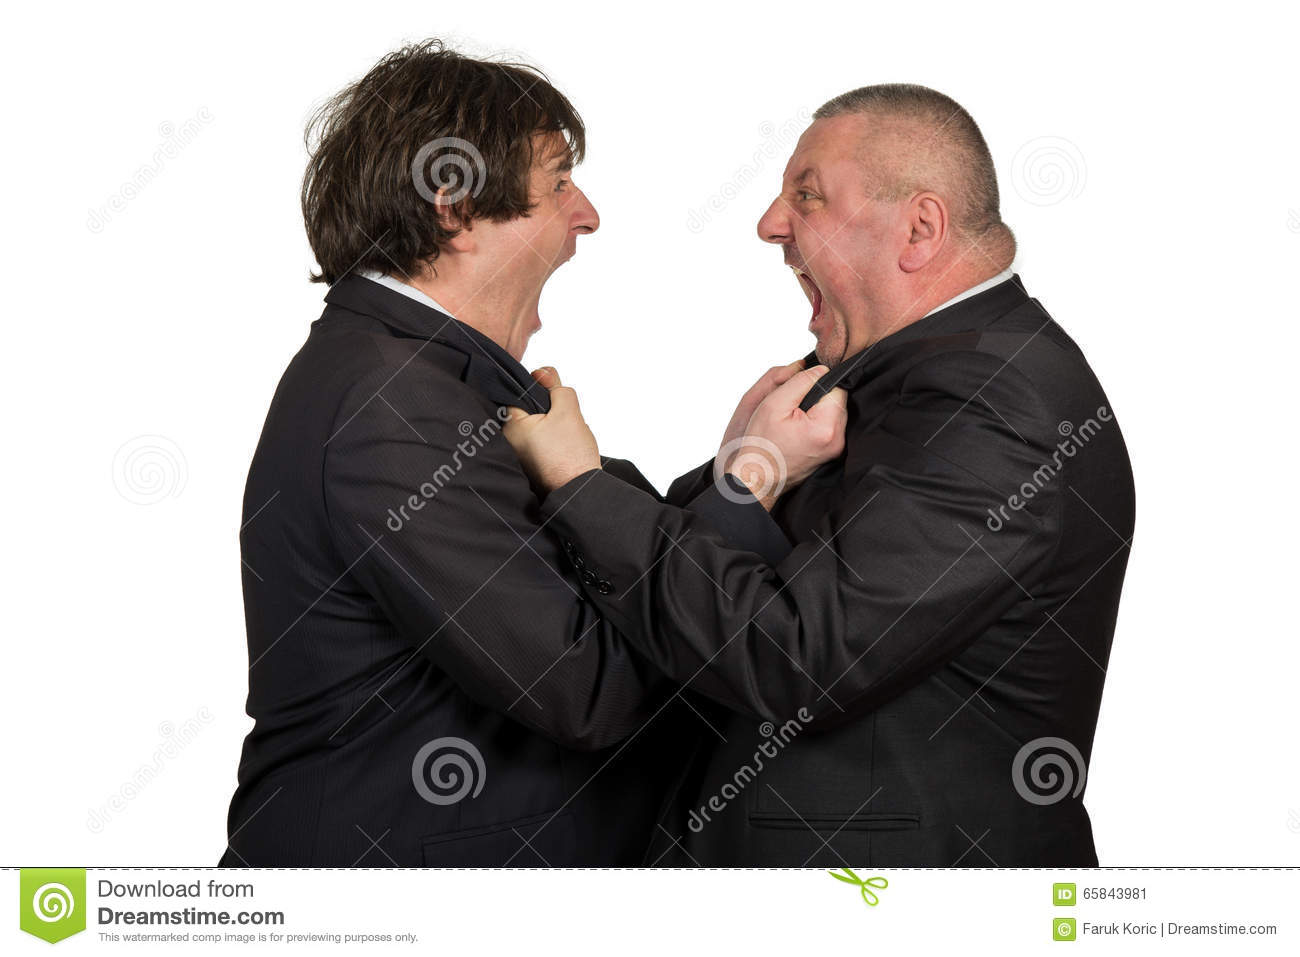 Two angry business colleagues during an argument, isolated on white background